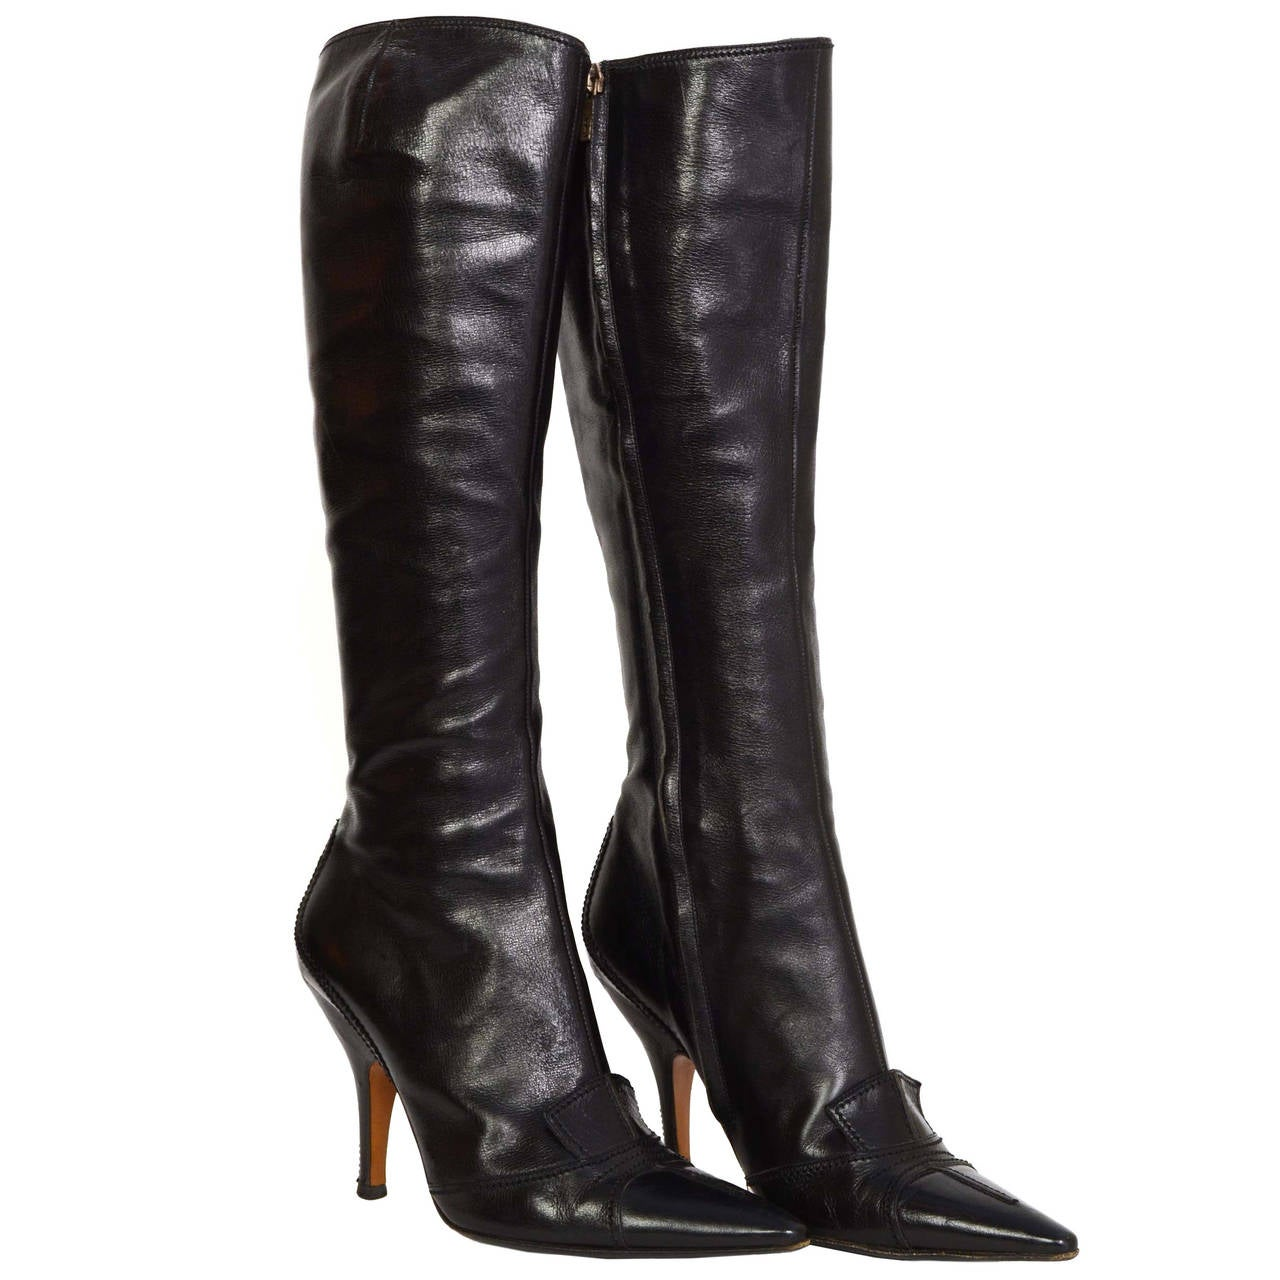 01d5e2992b1 YVES SAINT LAURENT YSL Black Leather Tall Boots sz 37.5 For Sale at ...